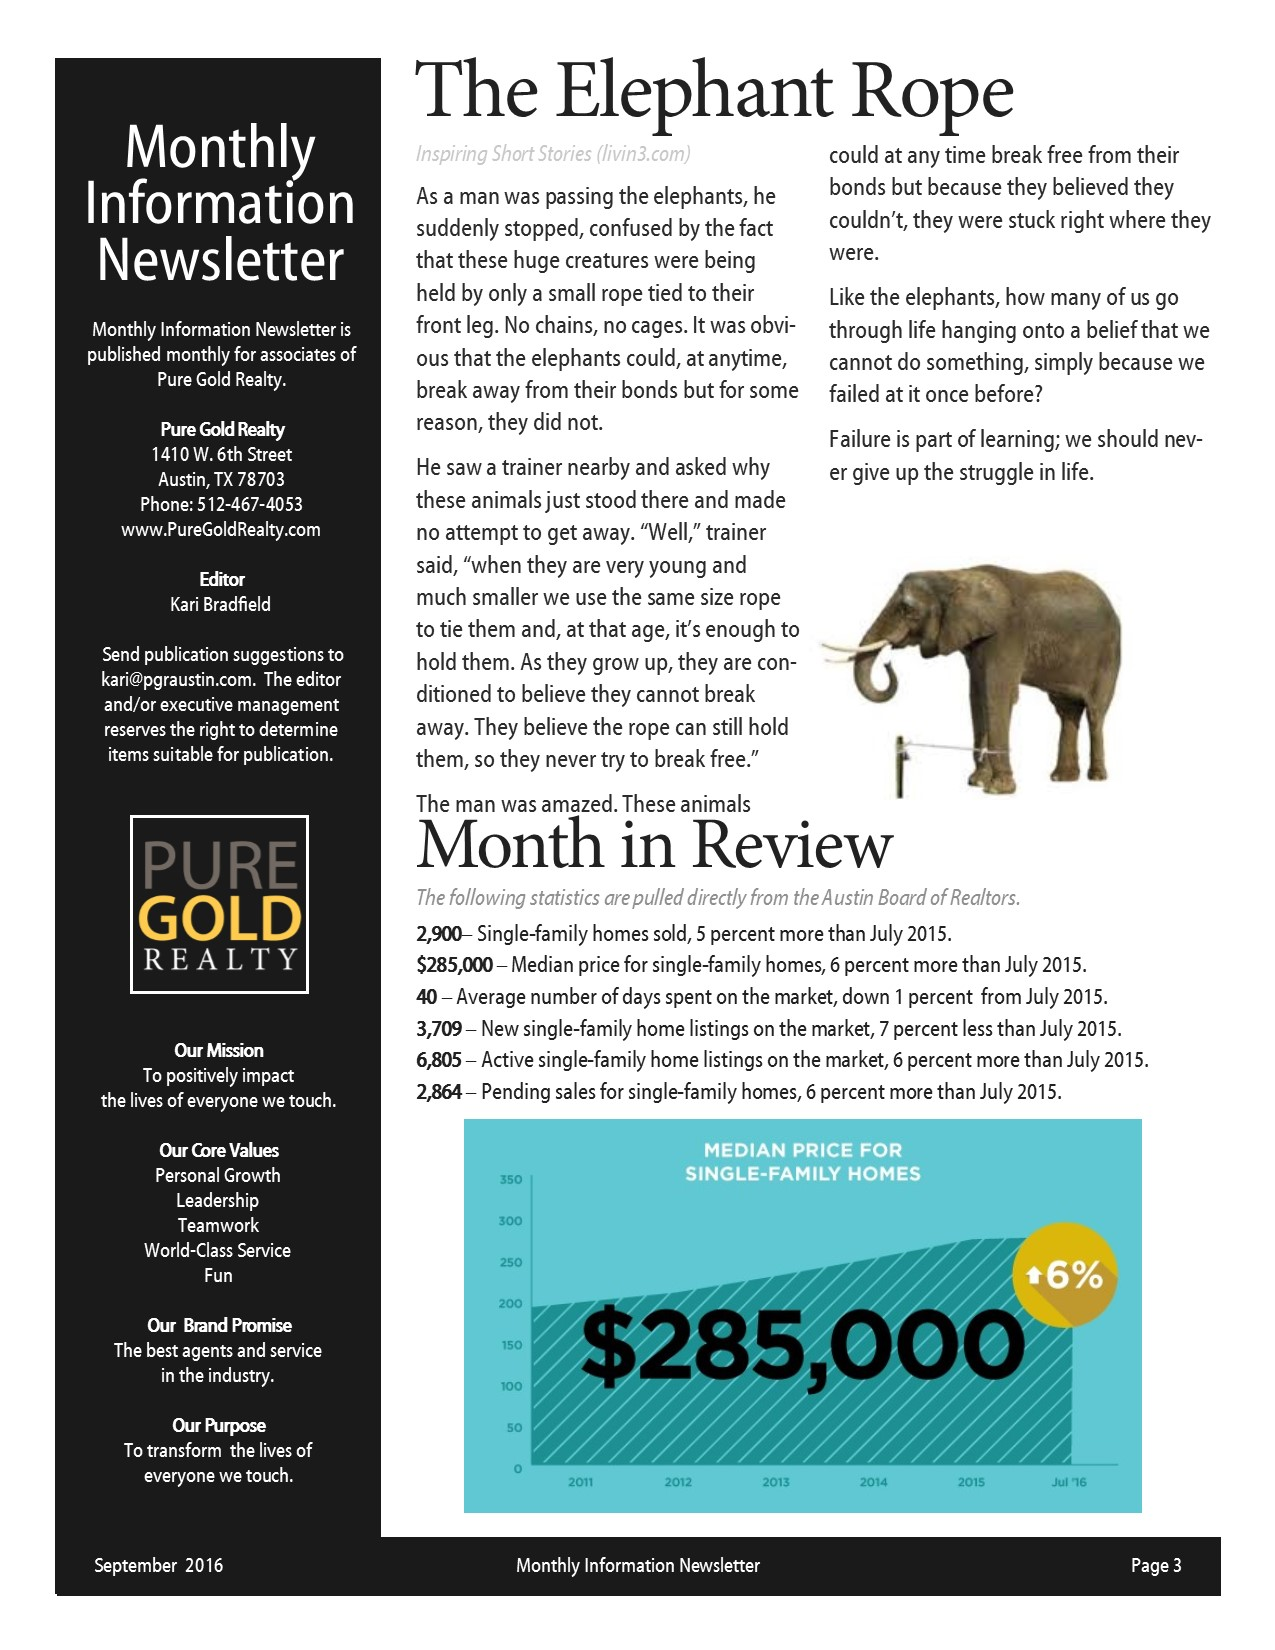 September 2016 Newsletter Page 3